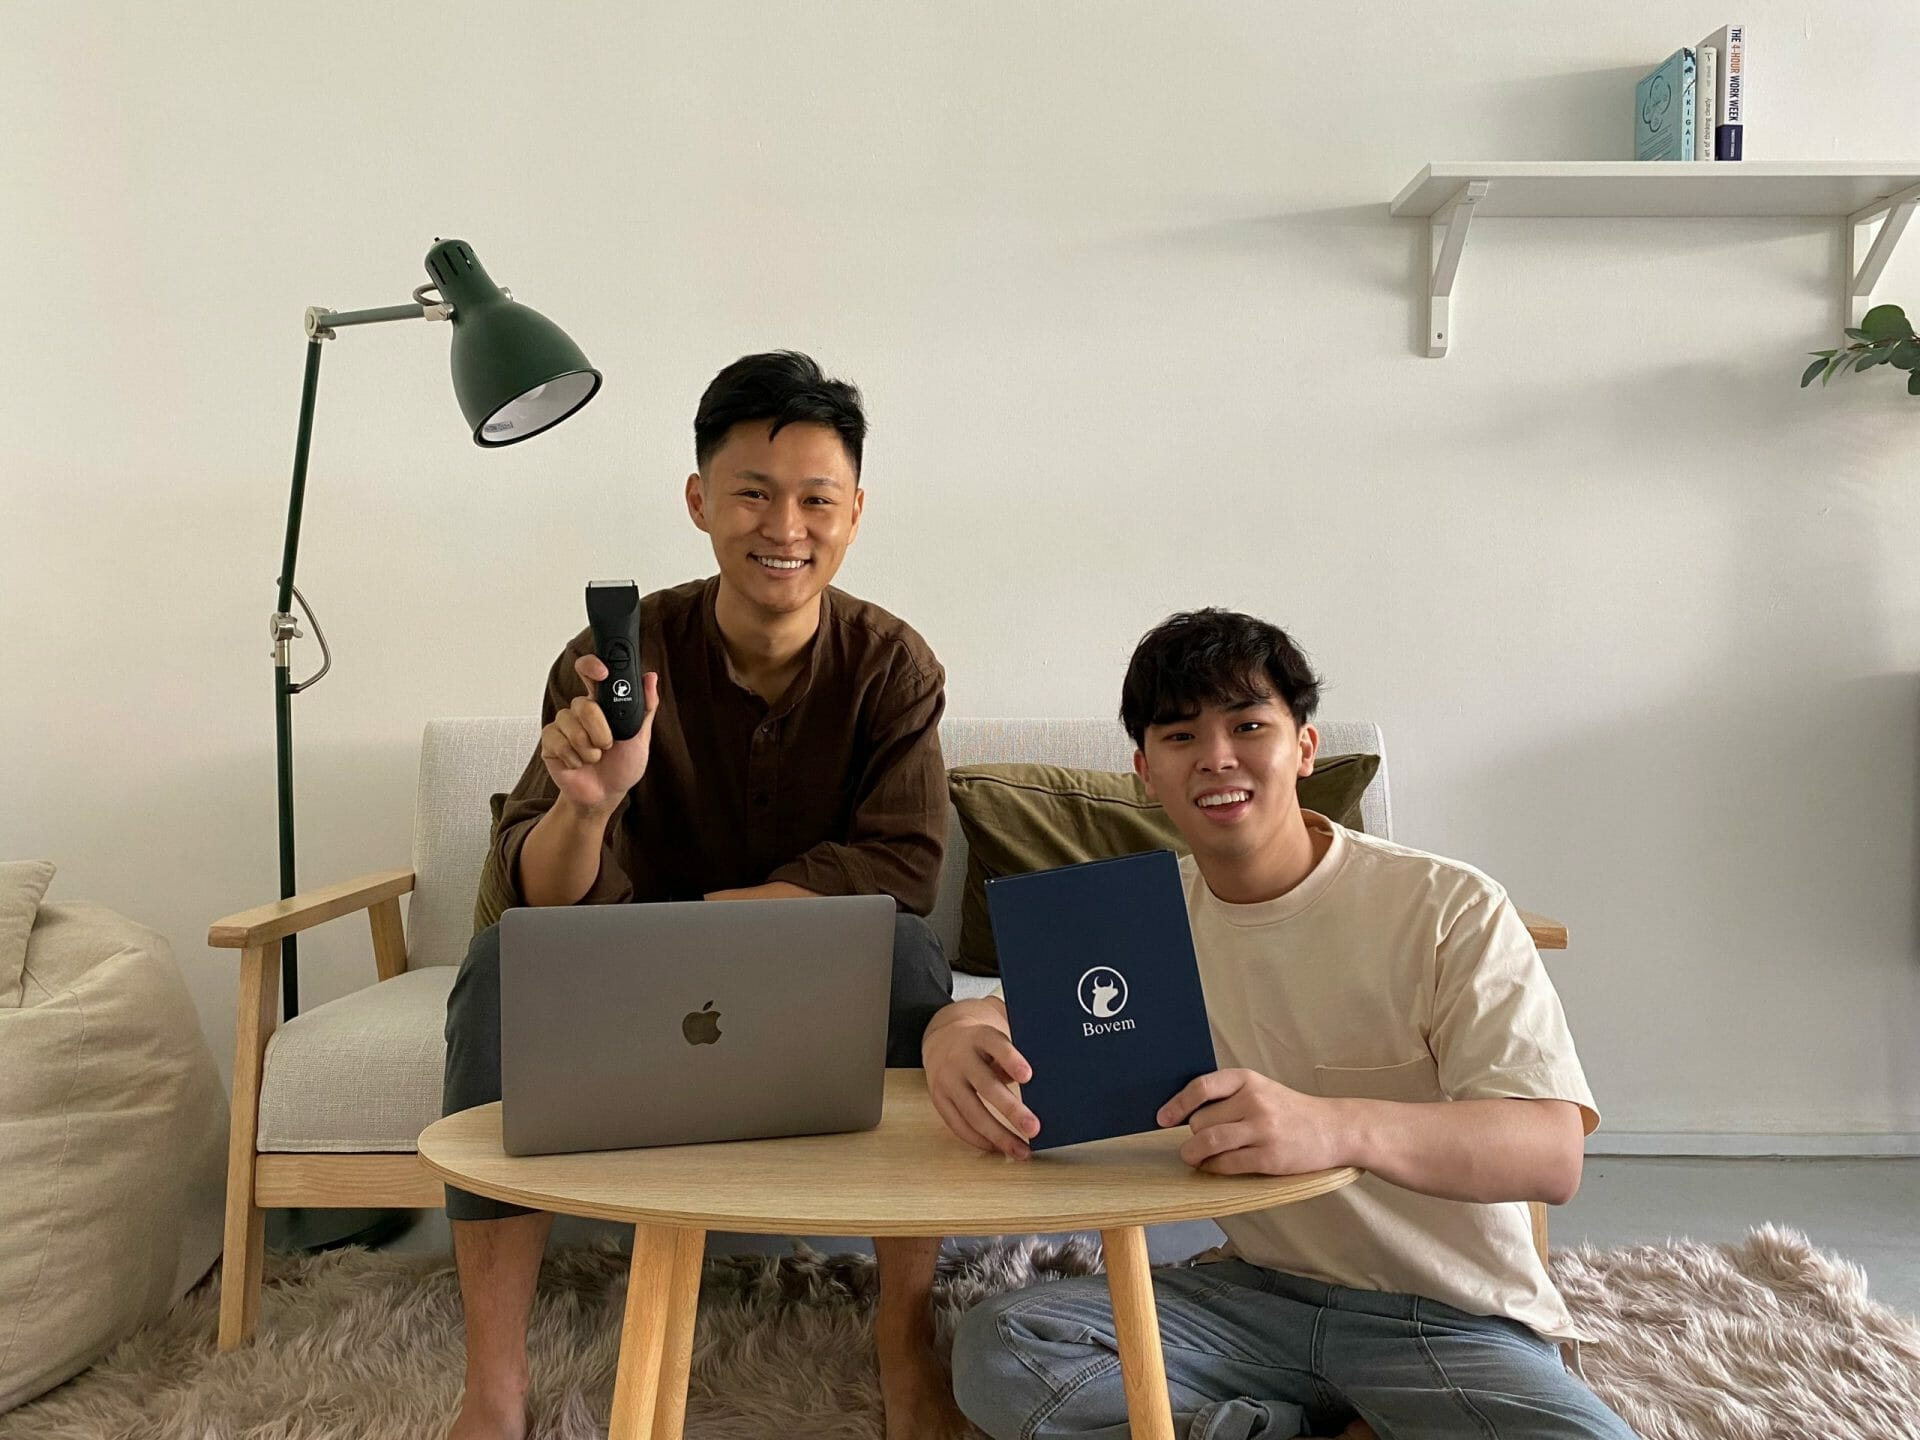 #MensFolioMeets Lydon Ong of Bovem About the Globe Trimmer, a Smarter Way to Shave